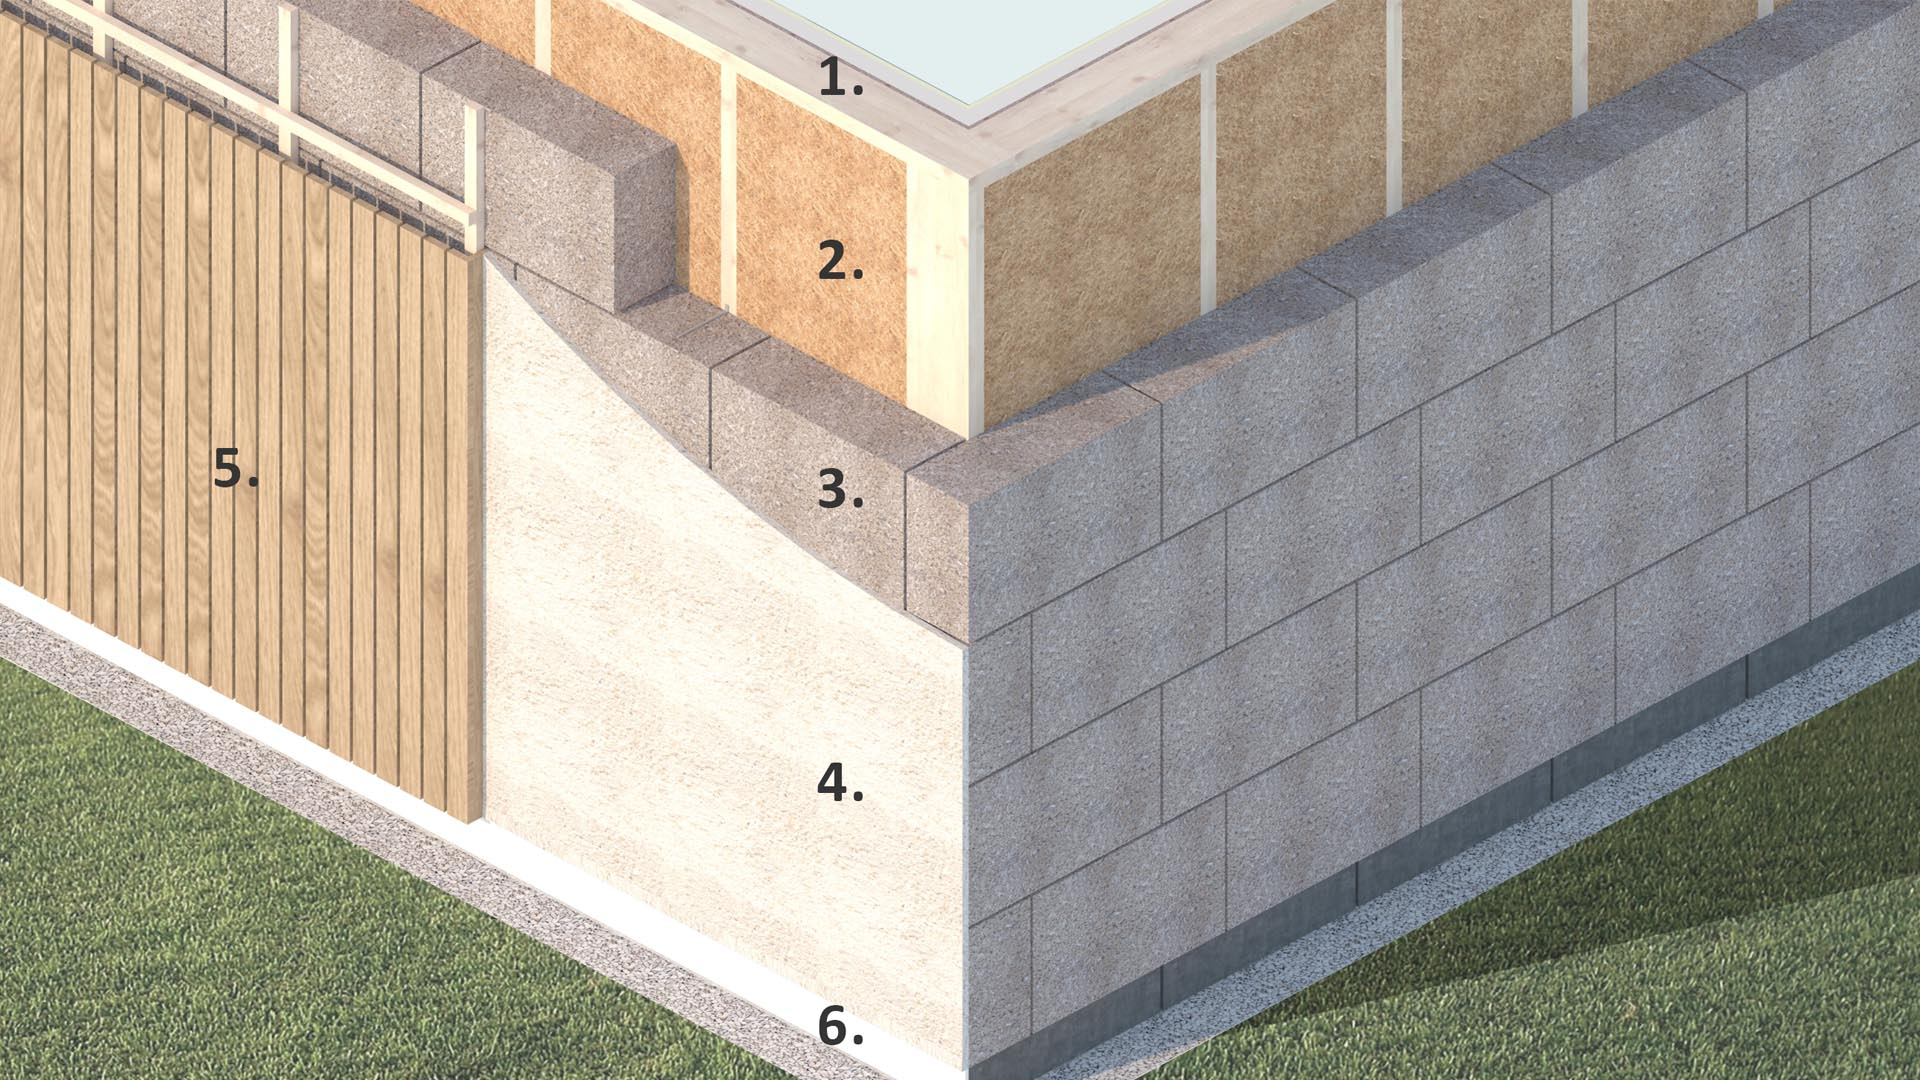 Diagram showing IndiBloc installed in a building